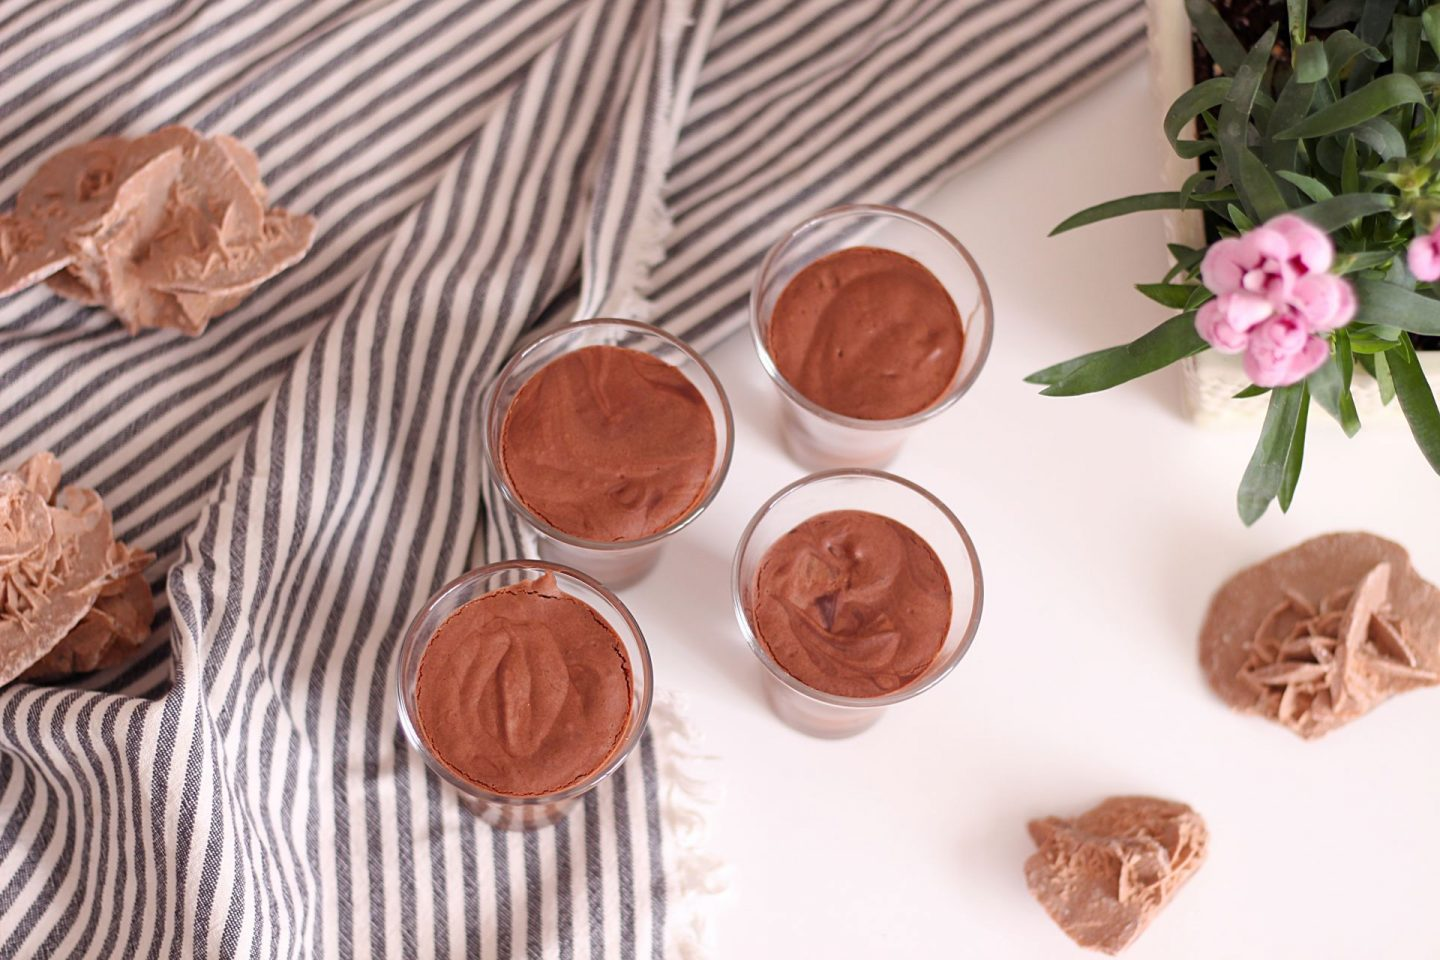 vegan chocolate mousse chickpeas